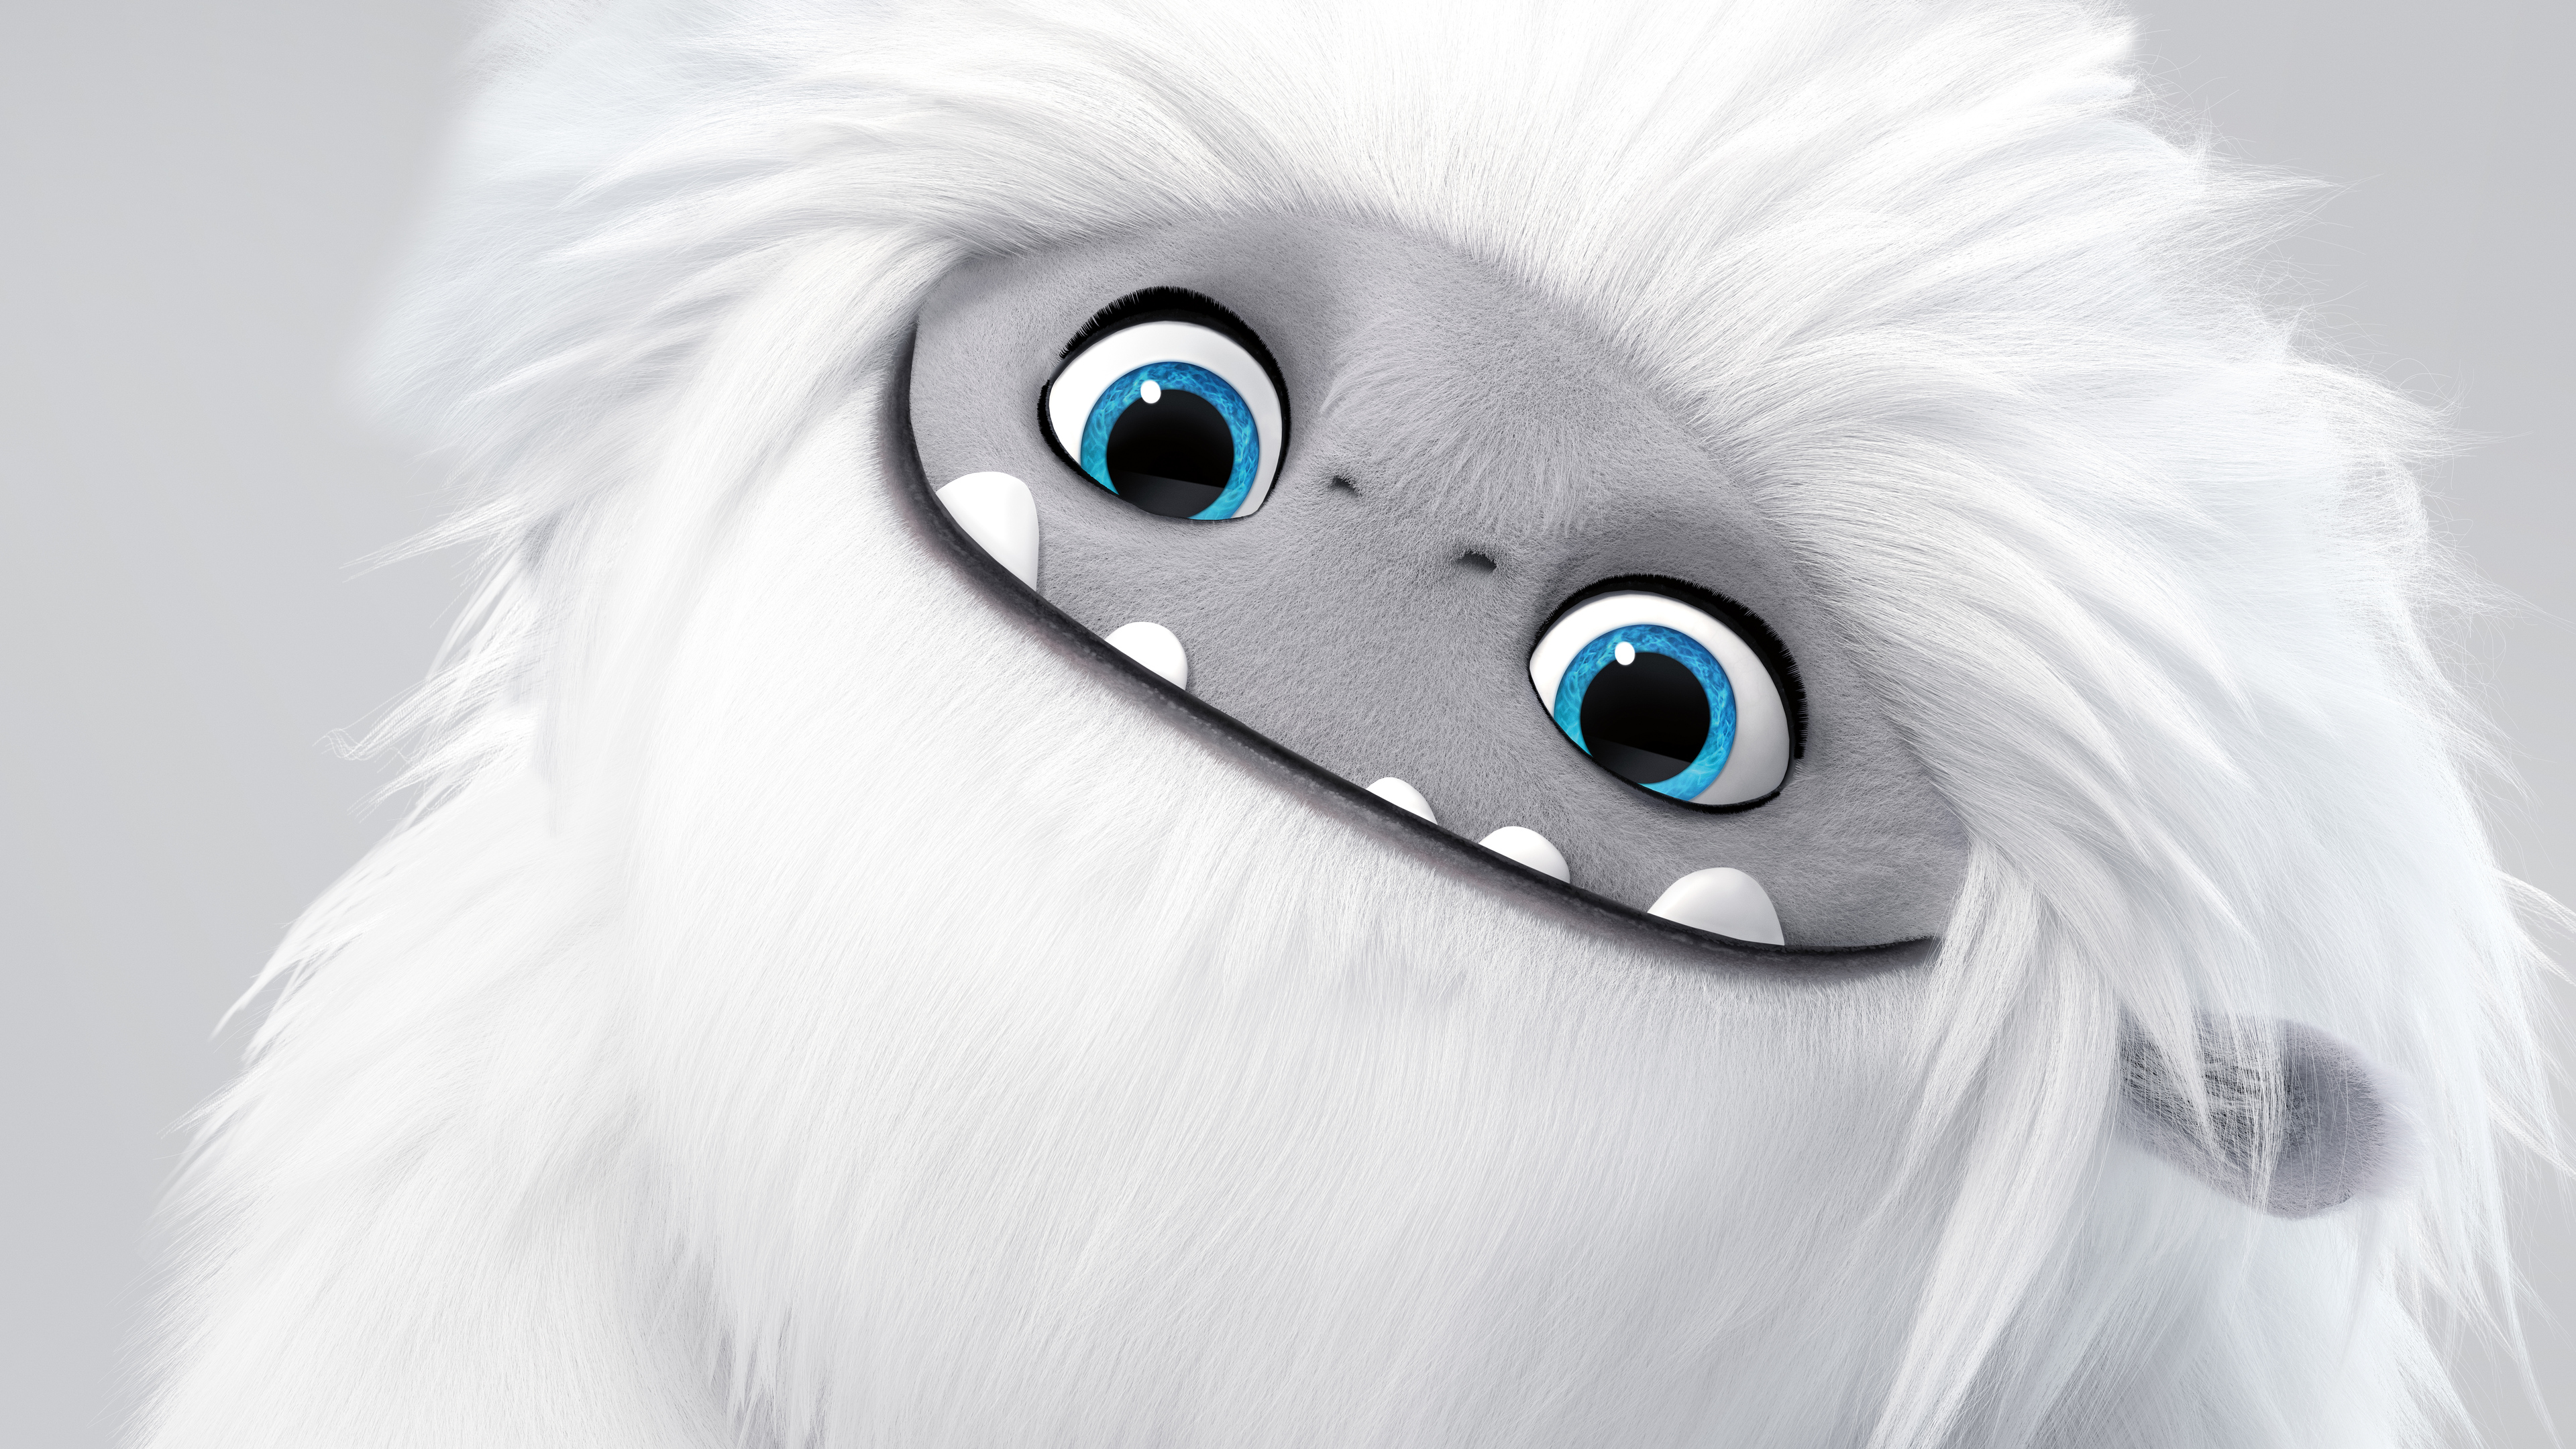 abominable 2019 4k 1558219738 - Abominable 2019 4k - hd-wallpapers, animated movies wallpapers, abominable wallpapers, 4k-wallpapers, 2019 movies wallpapers